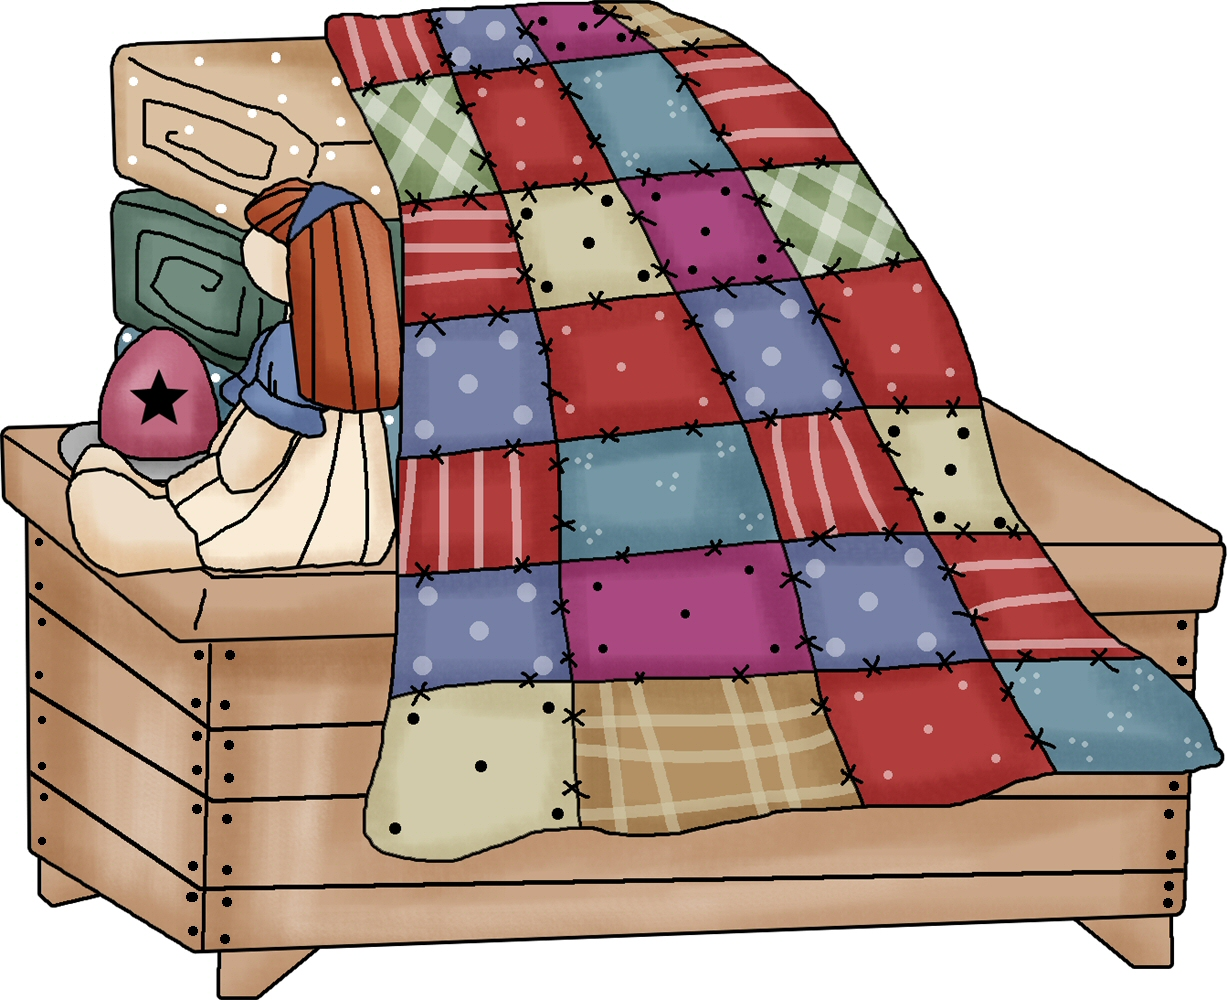 clipart library download Free quilting cliparts download. Quilters clipart.